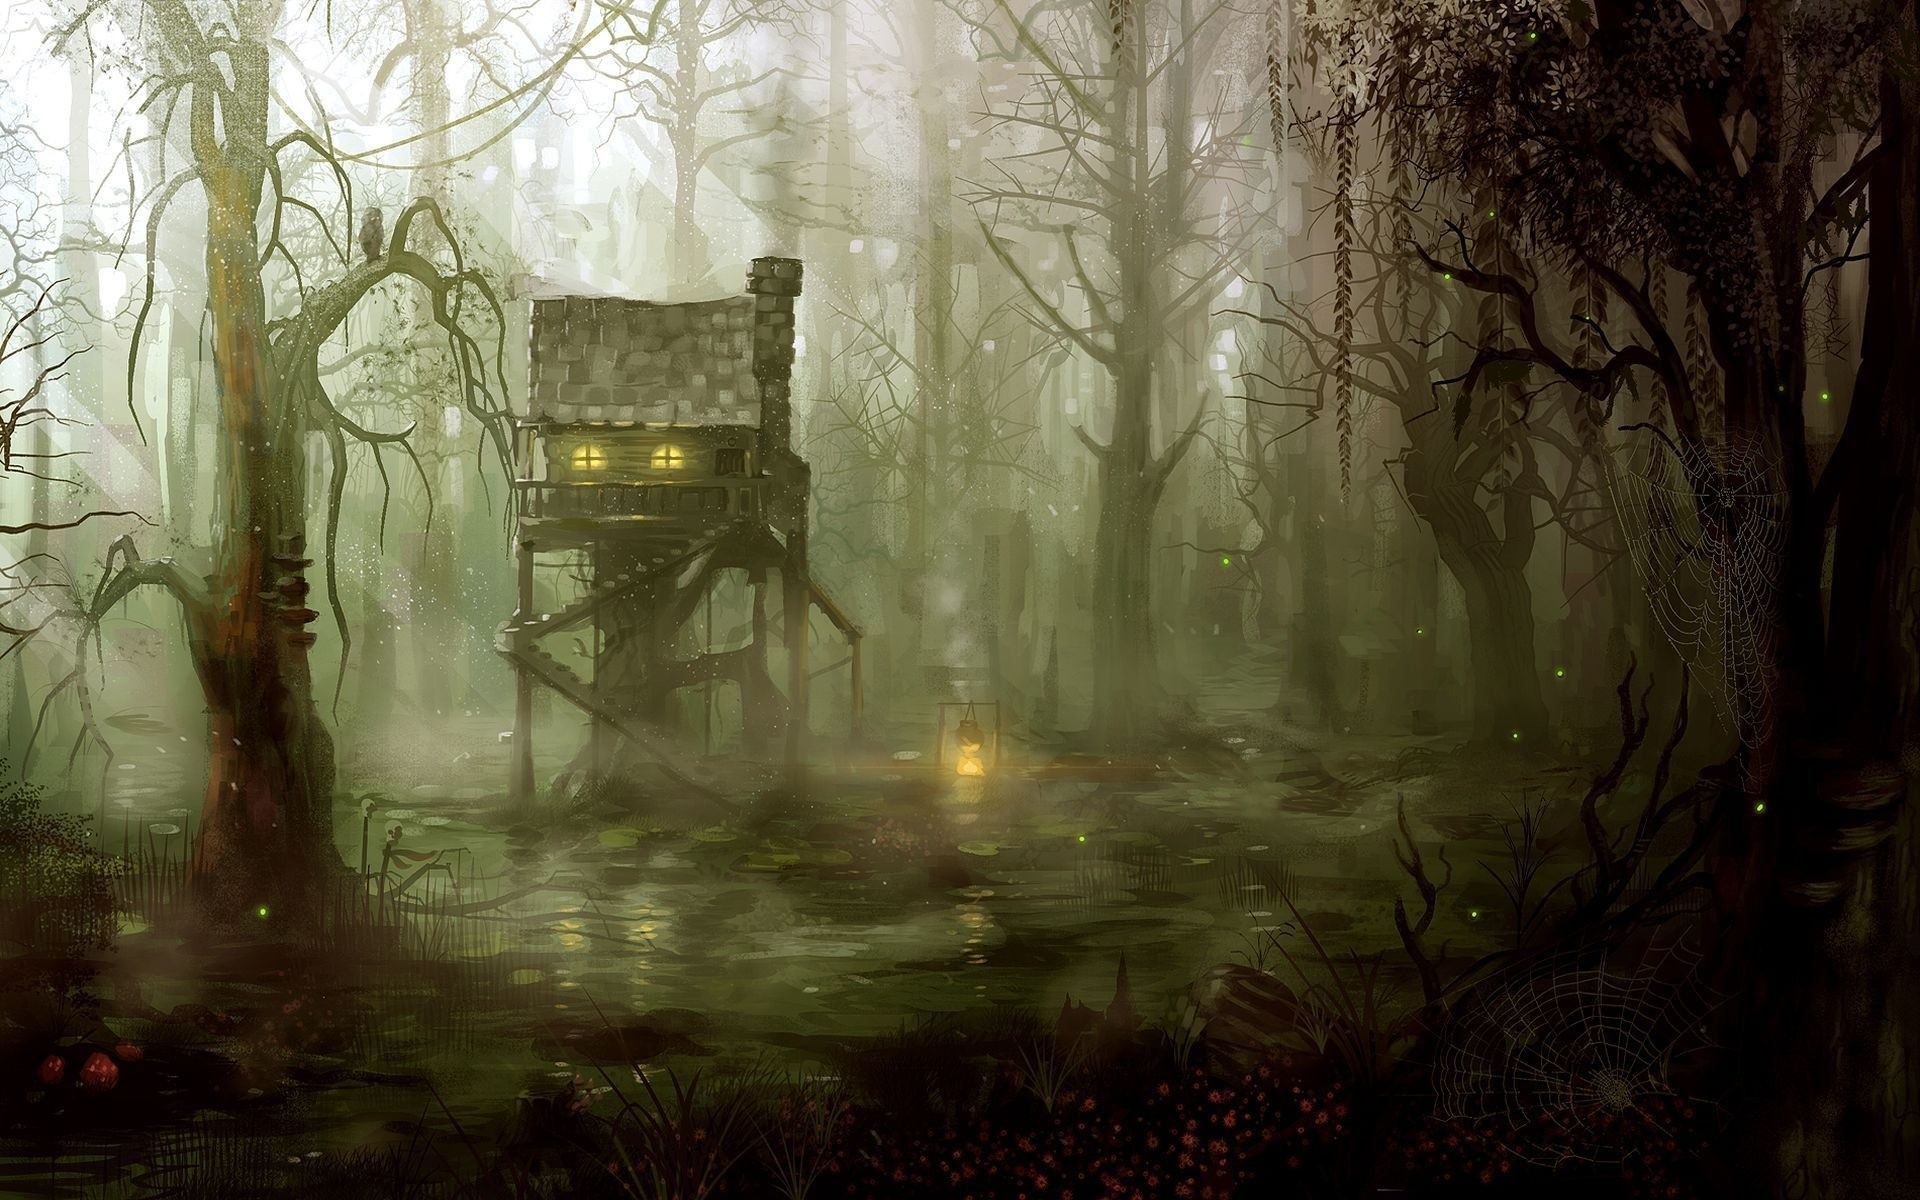 1920x1200 Fantasy art artistic drawing painting dark spooky architecture buildings  houses swamp jungle forest trees fire flames